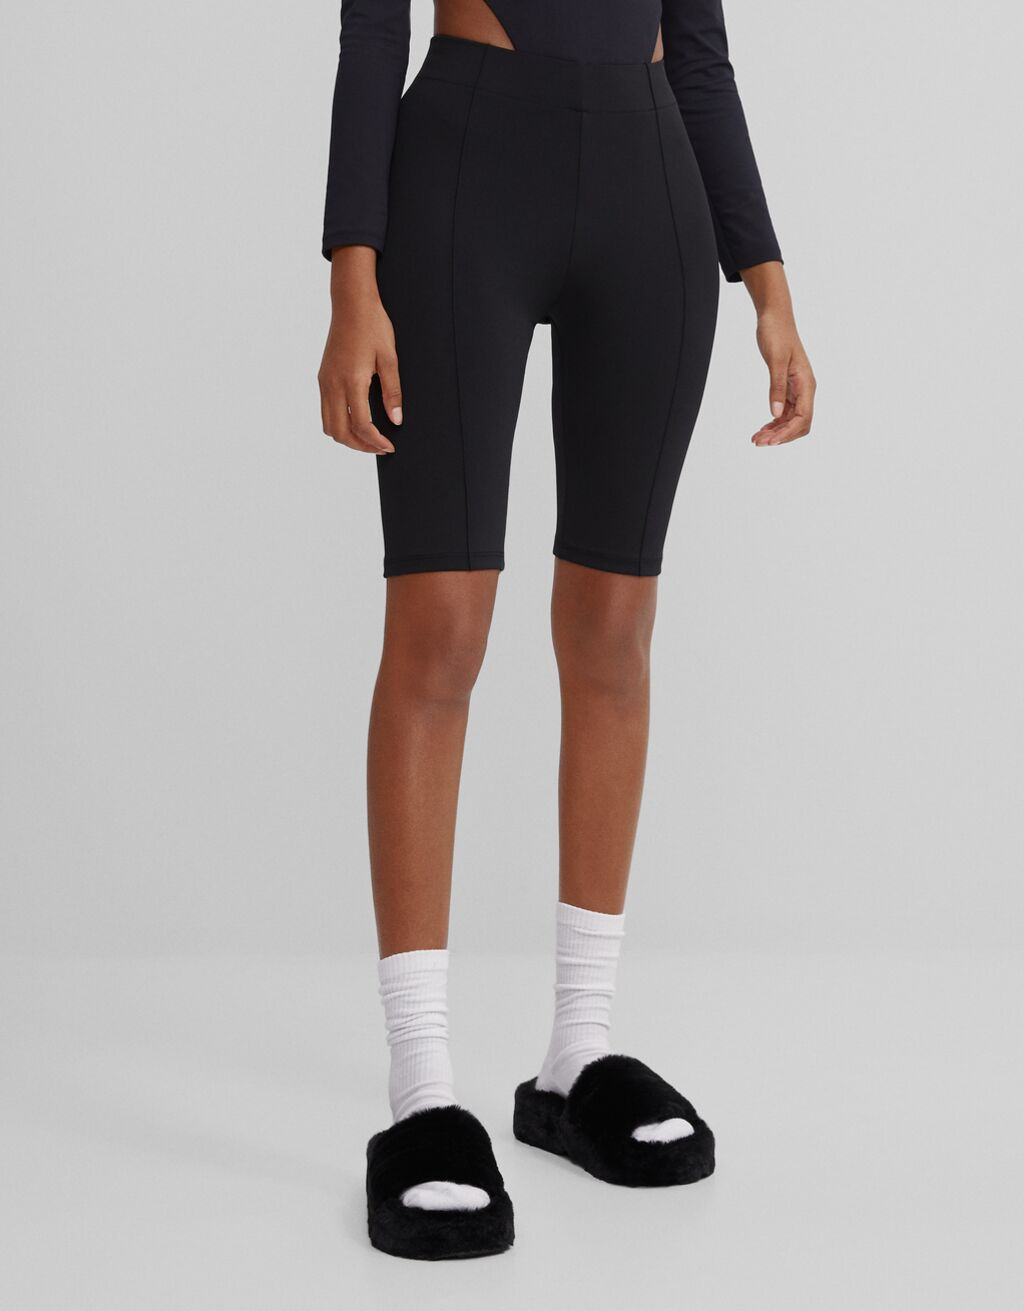 Neoprene cycling shorts